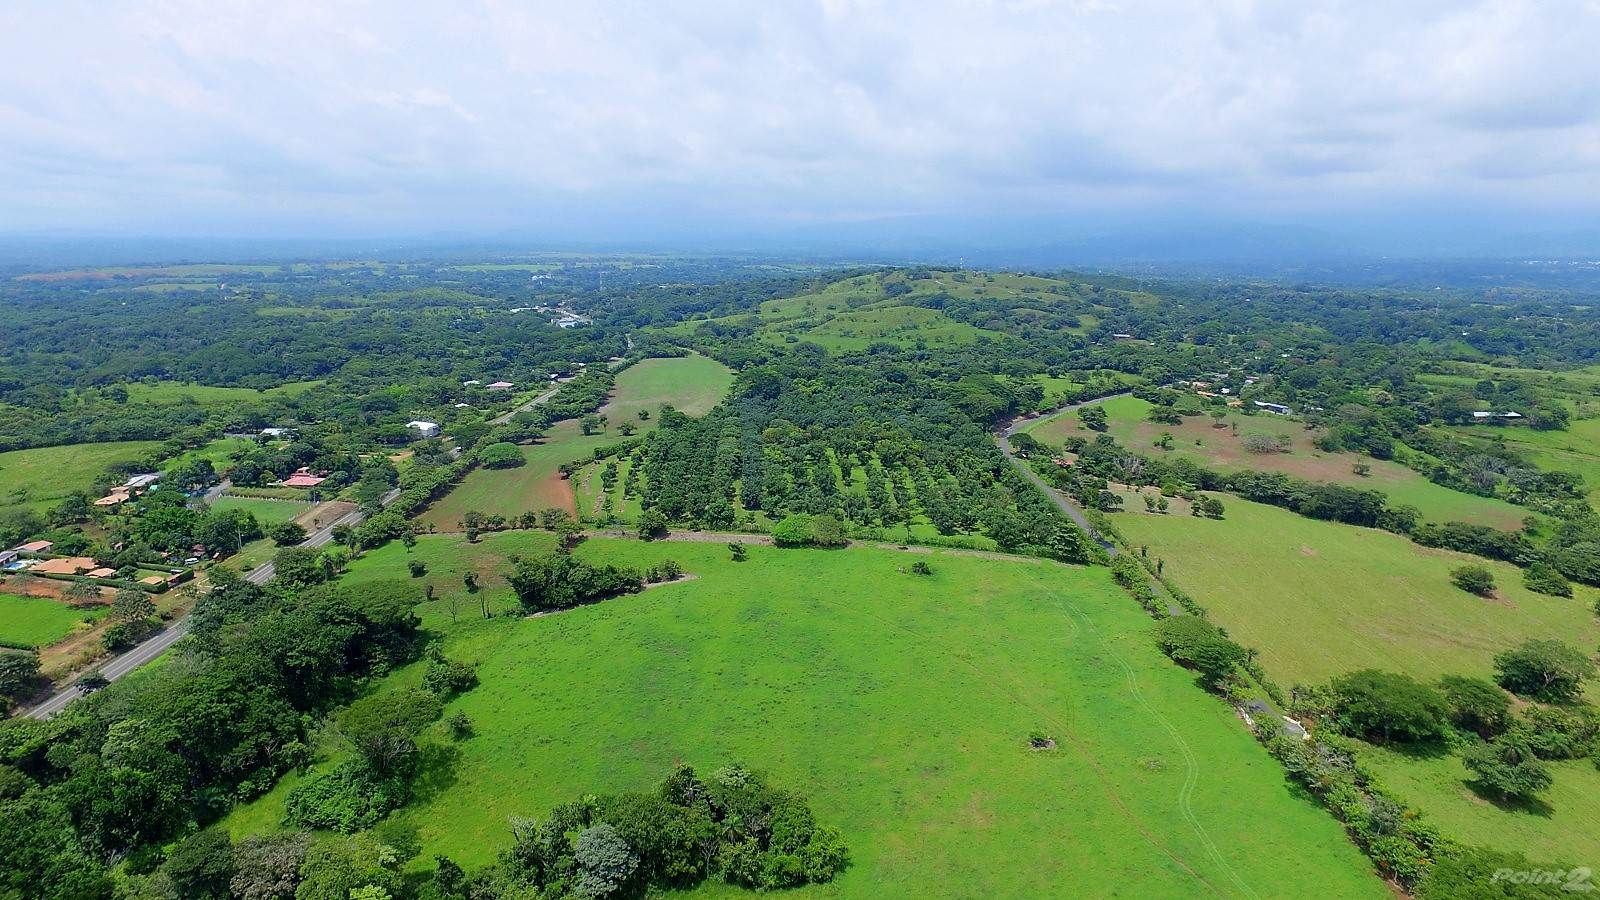 Exploitation agricole à vendre en RA1893 Land Investment close to future Int'l airport Orotina @ only 30min drive from Jaco, Orotina Coyolar, Alajuela ,23001  , Costa Rica